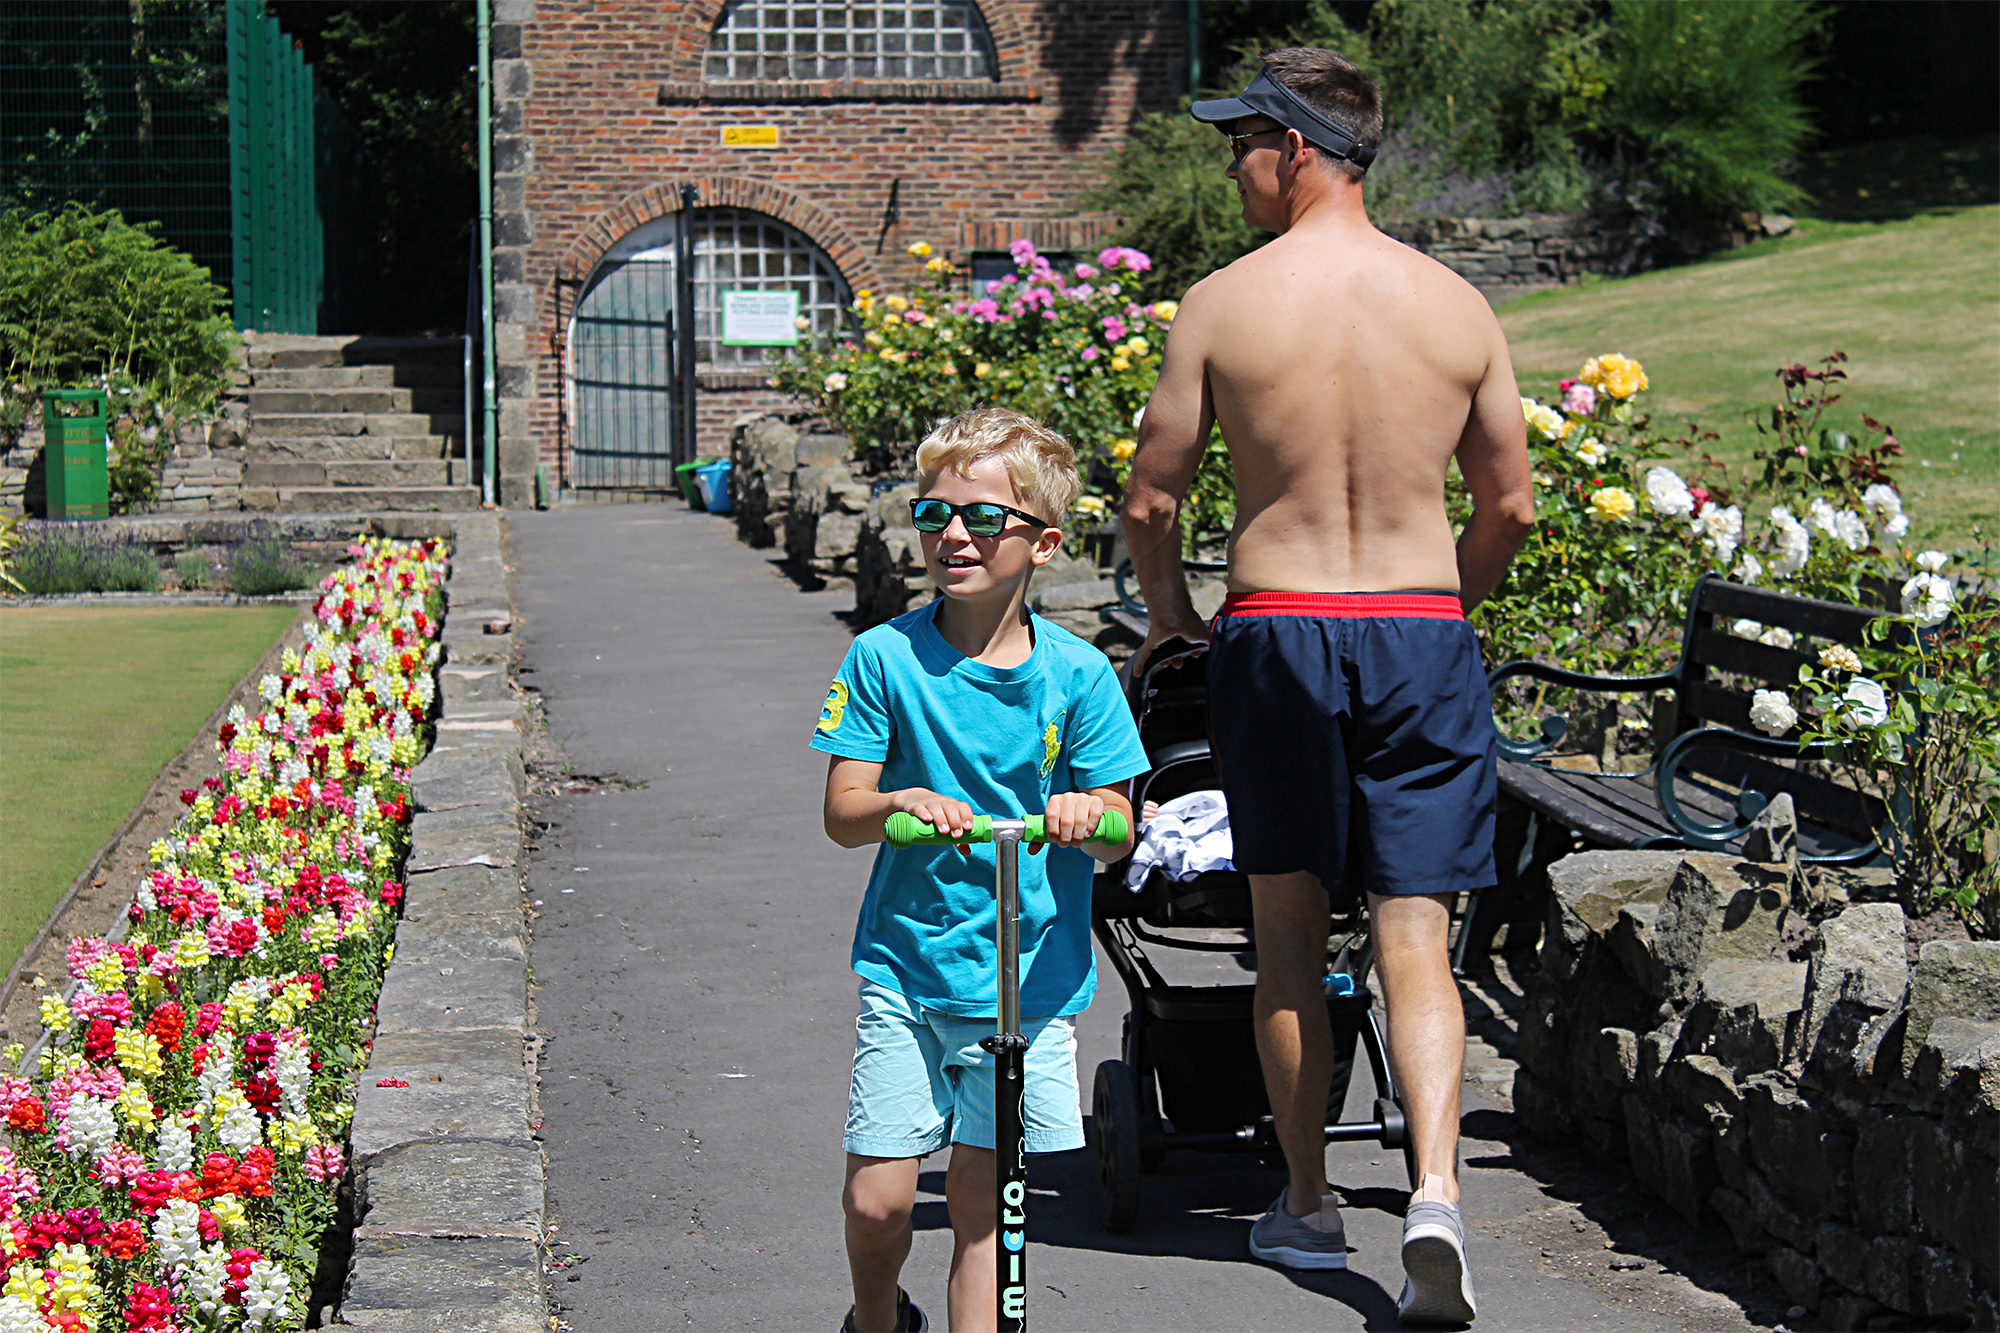 A boy scoots towards the camera, in a park, while a topless man walks away from it pushing a stroller